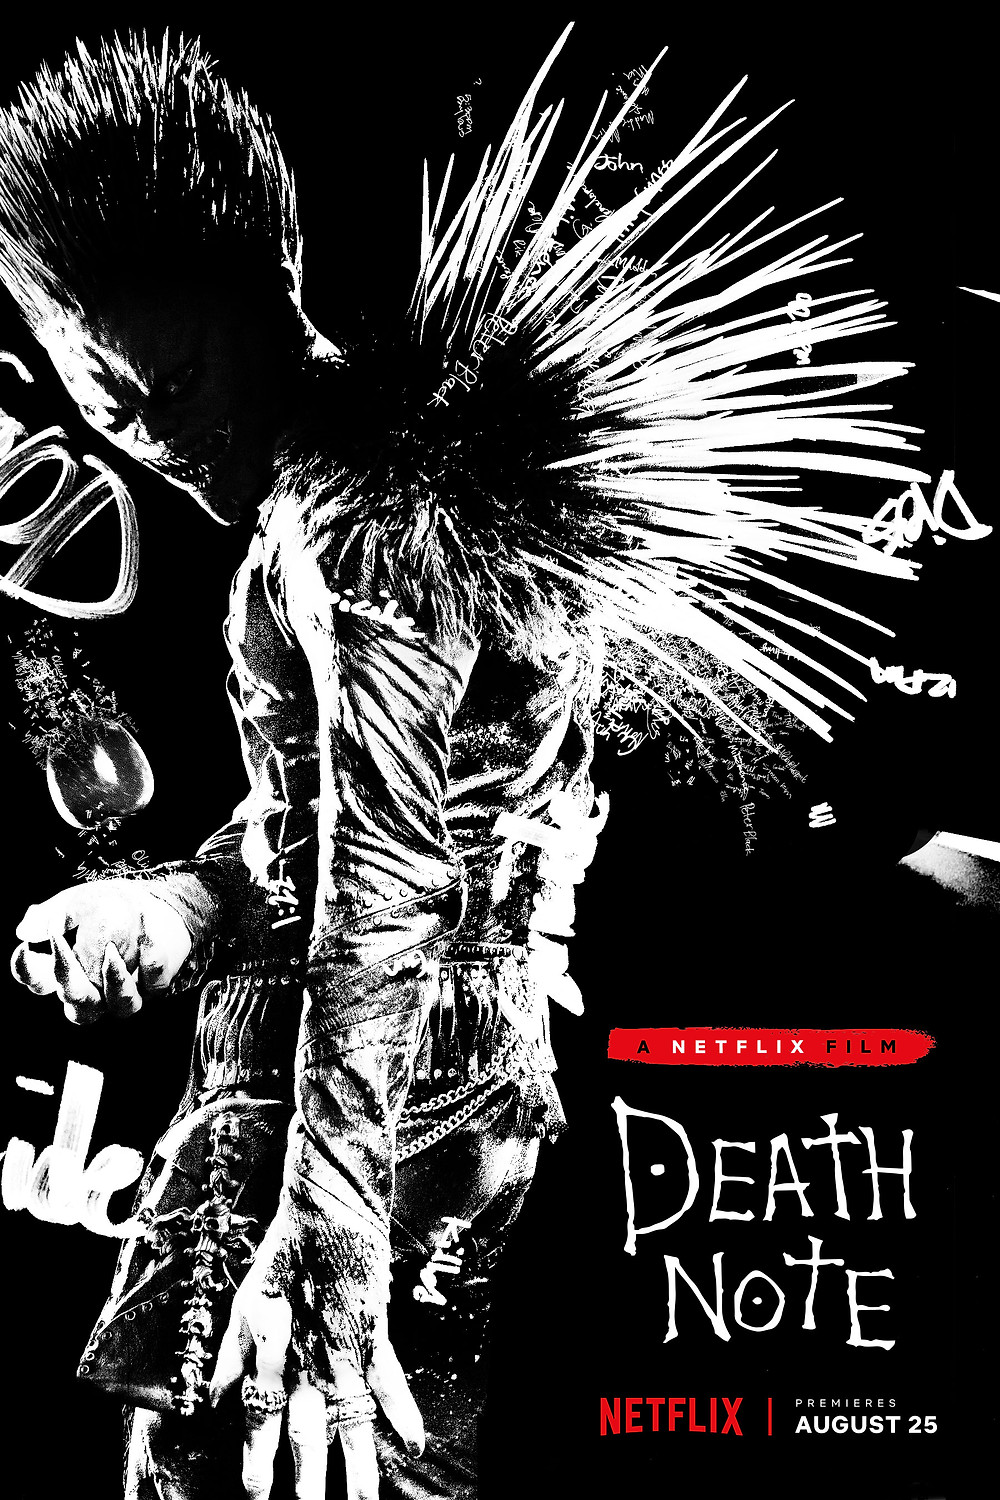 Death Note Netflix film review